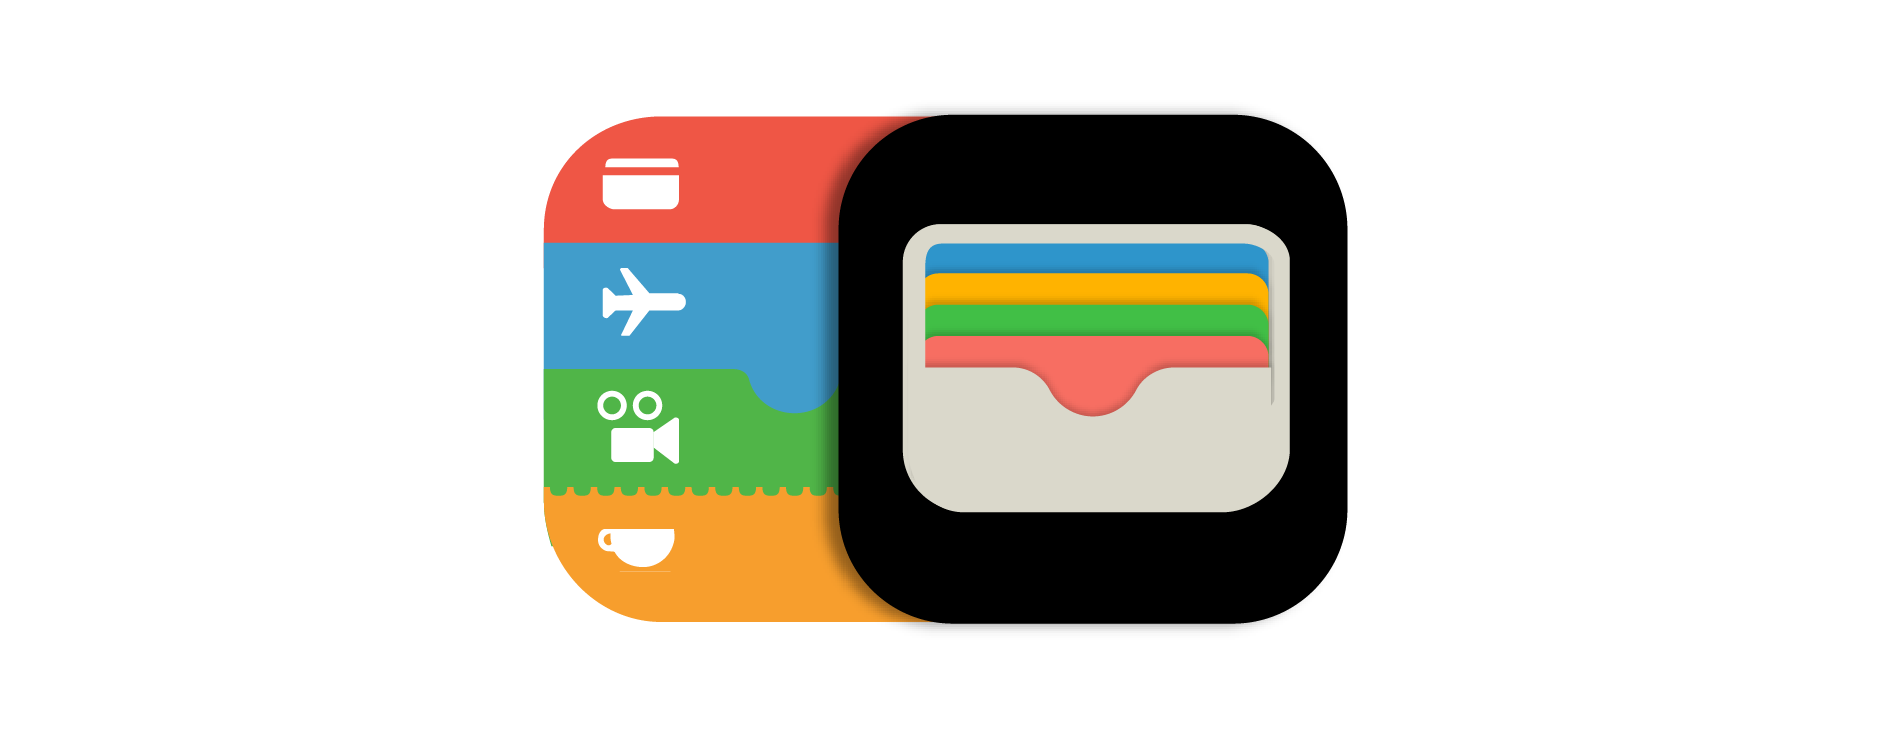 Why Passbook will be renamed Wallet